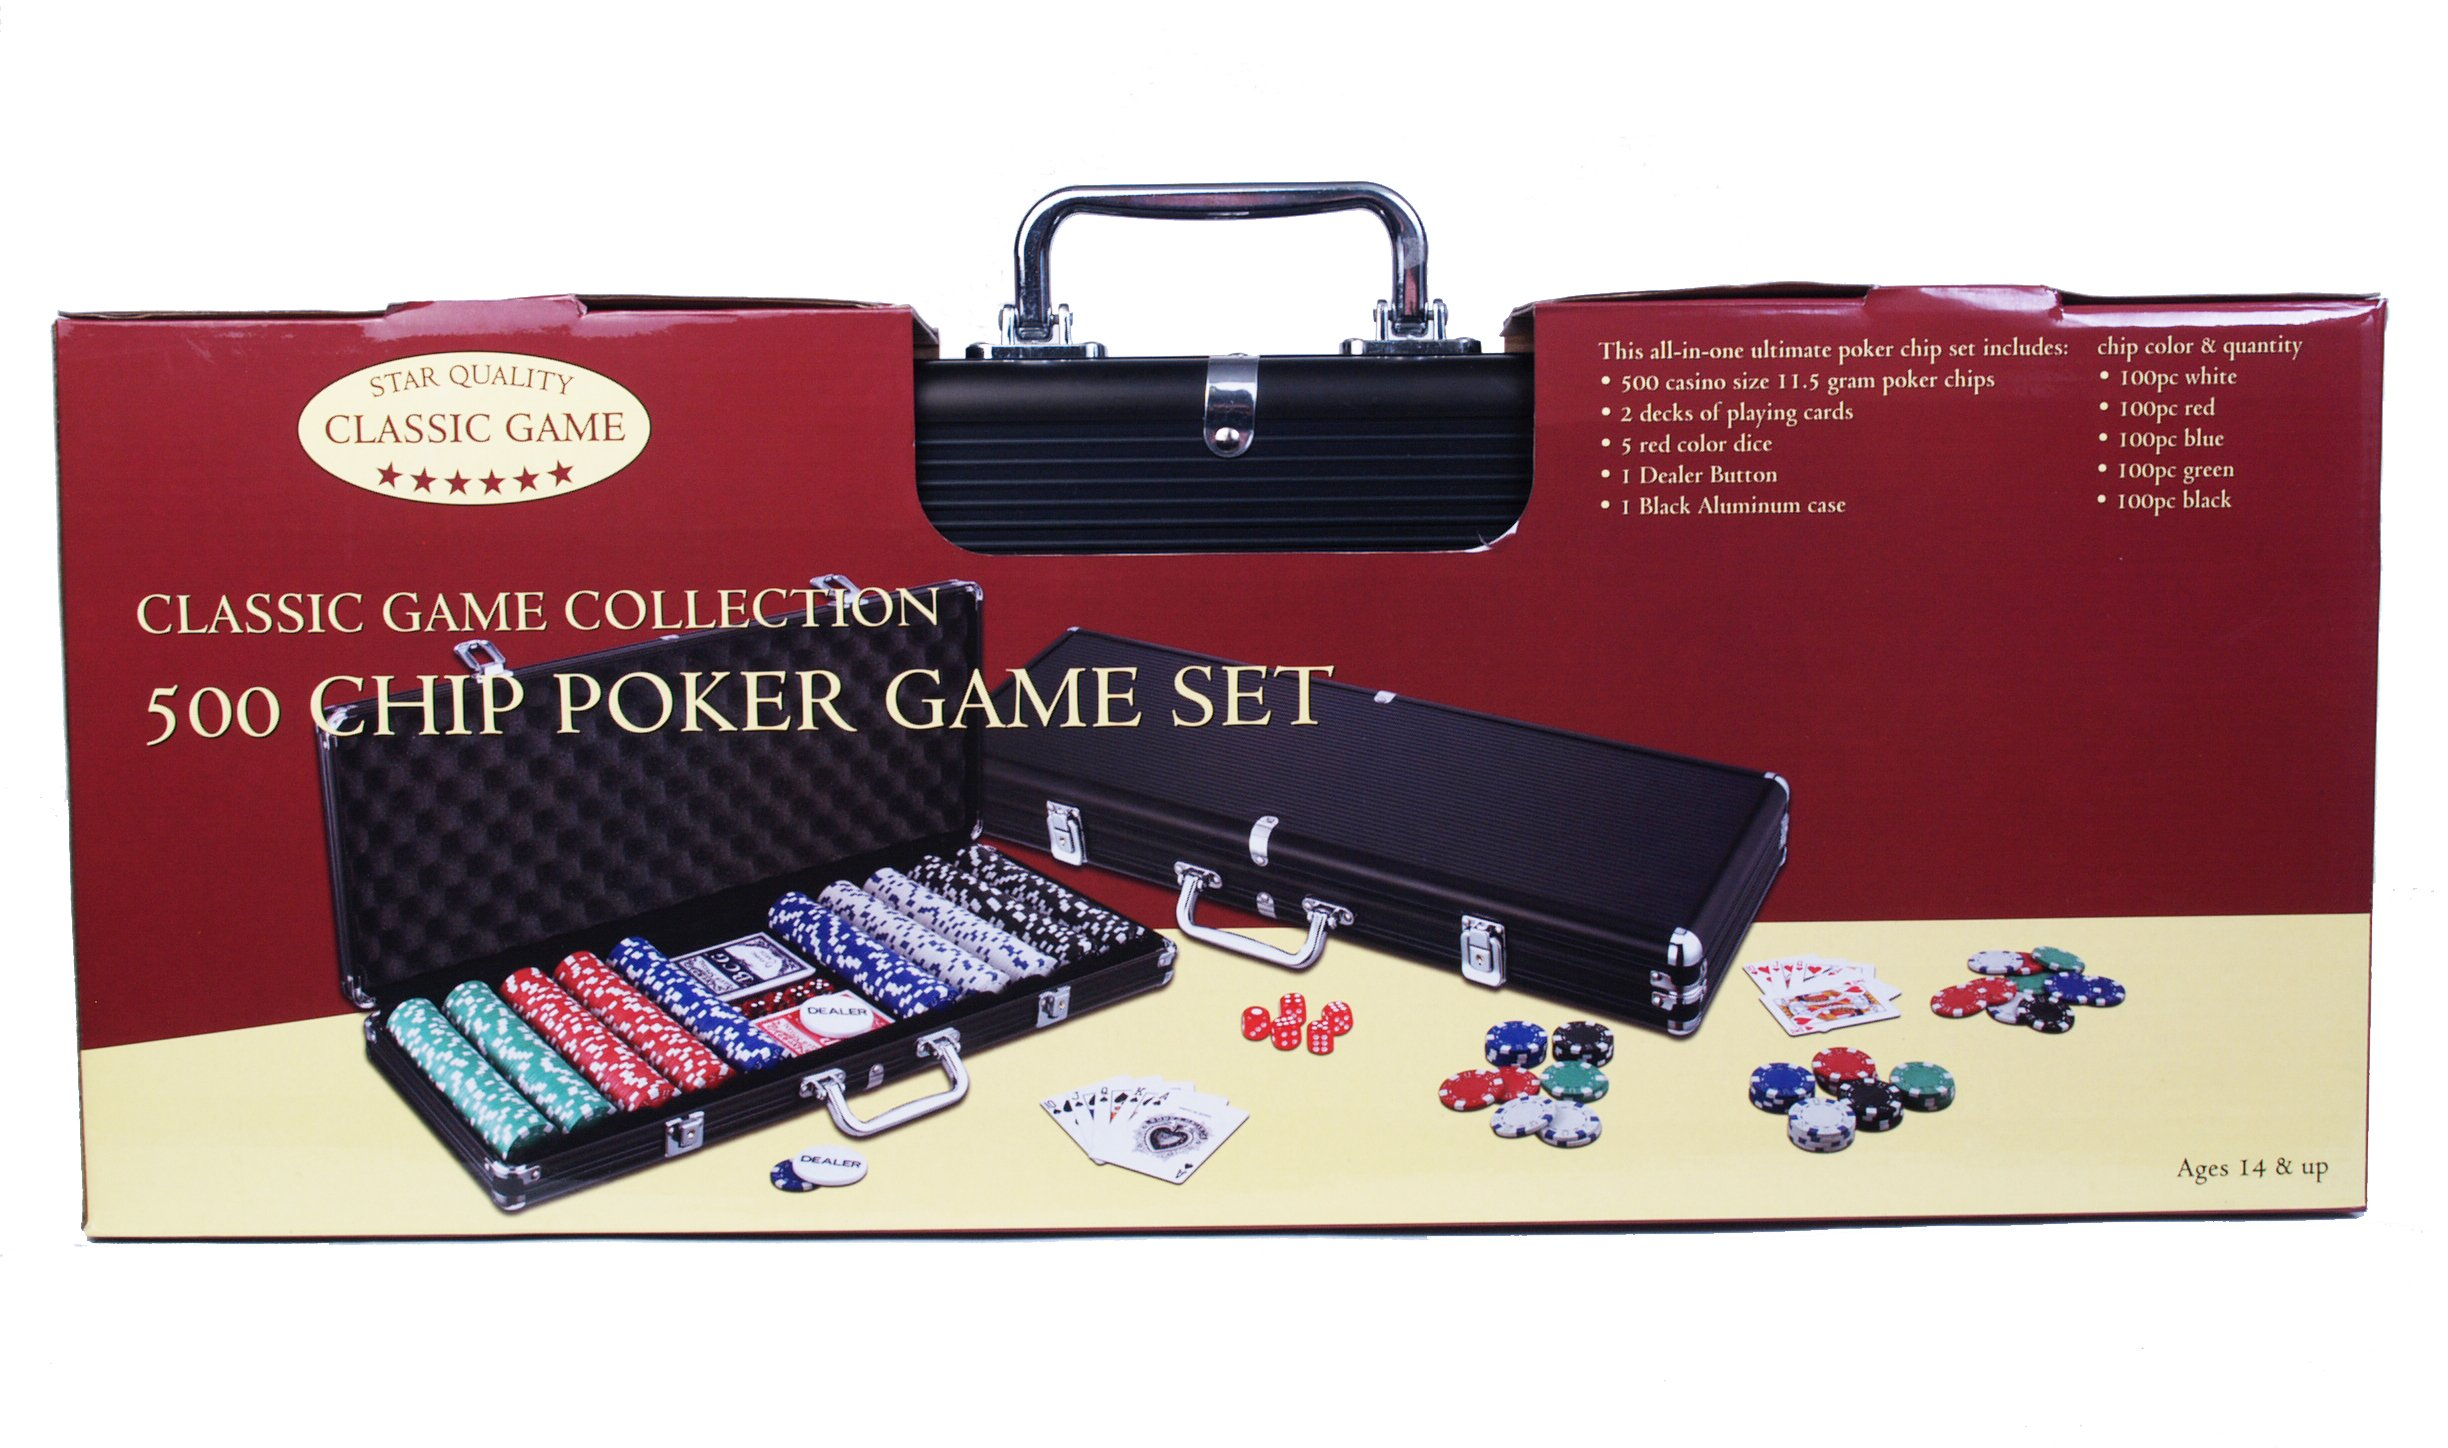 Classic Game Collection 500 Chip Poker Game Set